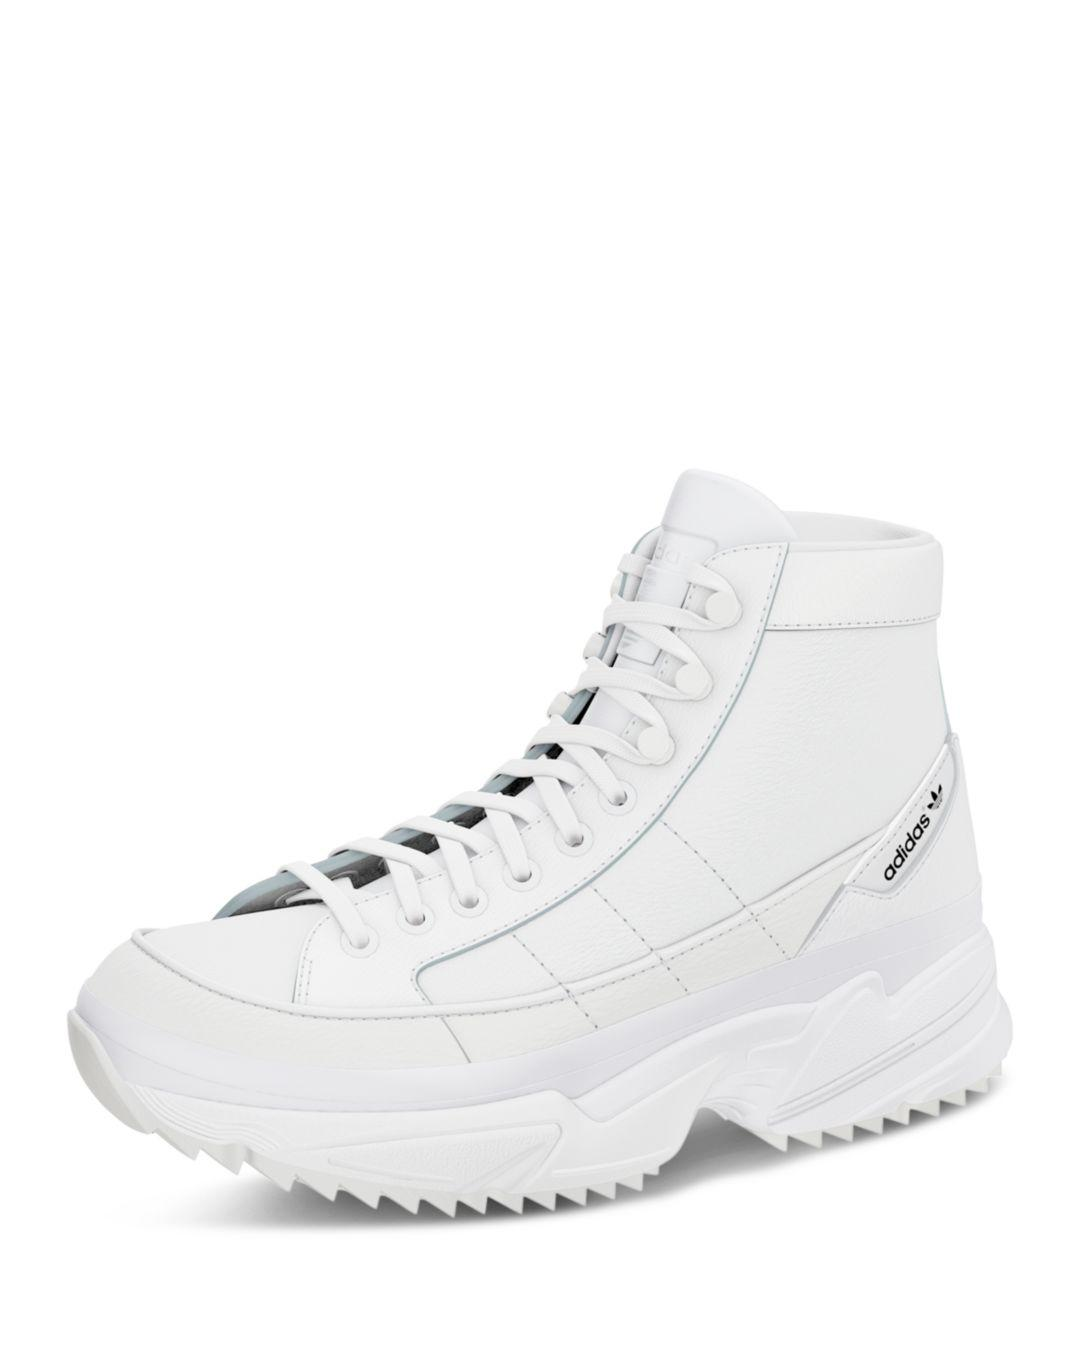 Women Shoes A | Sneakers, Platform sneakers, Adidas shoes